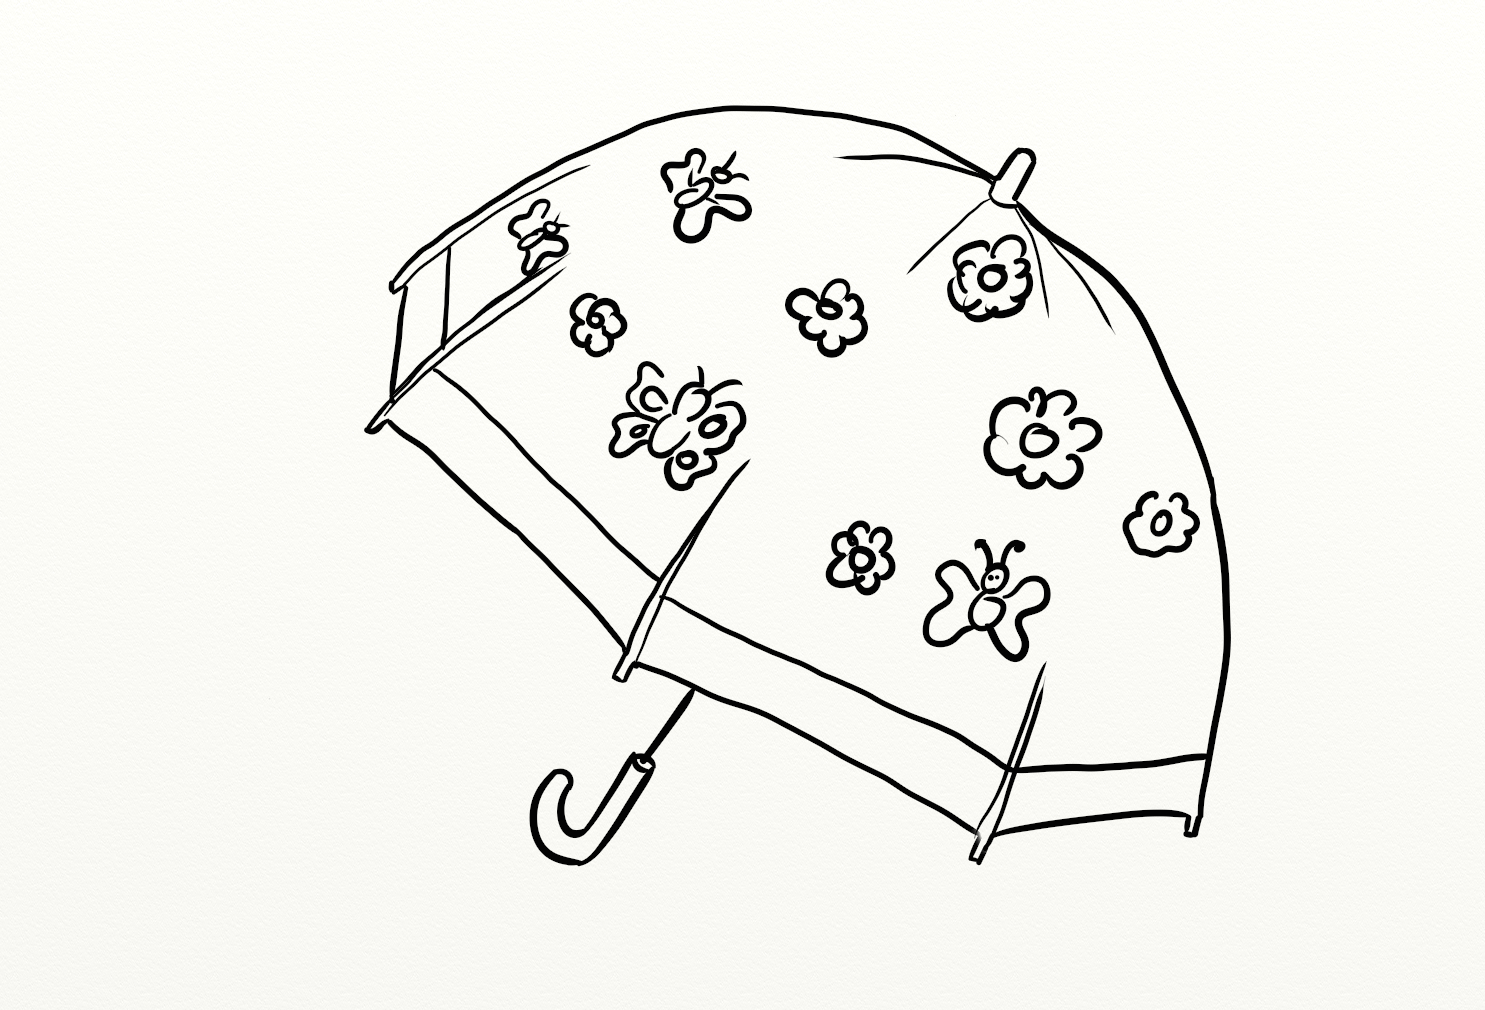 Line Drawing Umbrella : Colour drawing free hd wallpapers umbrella for kid